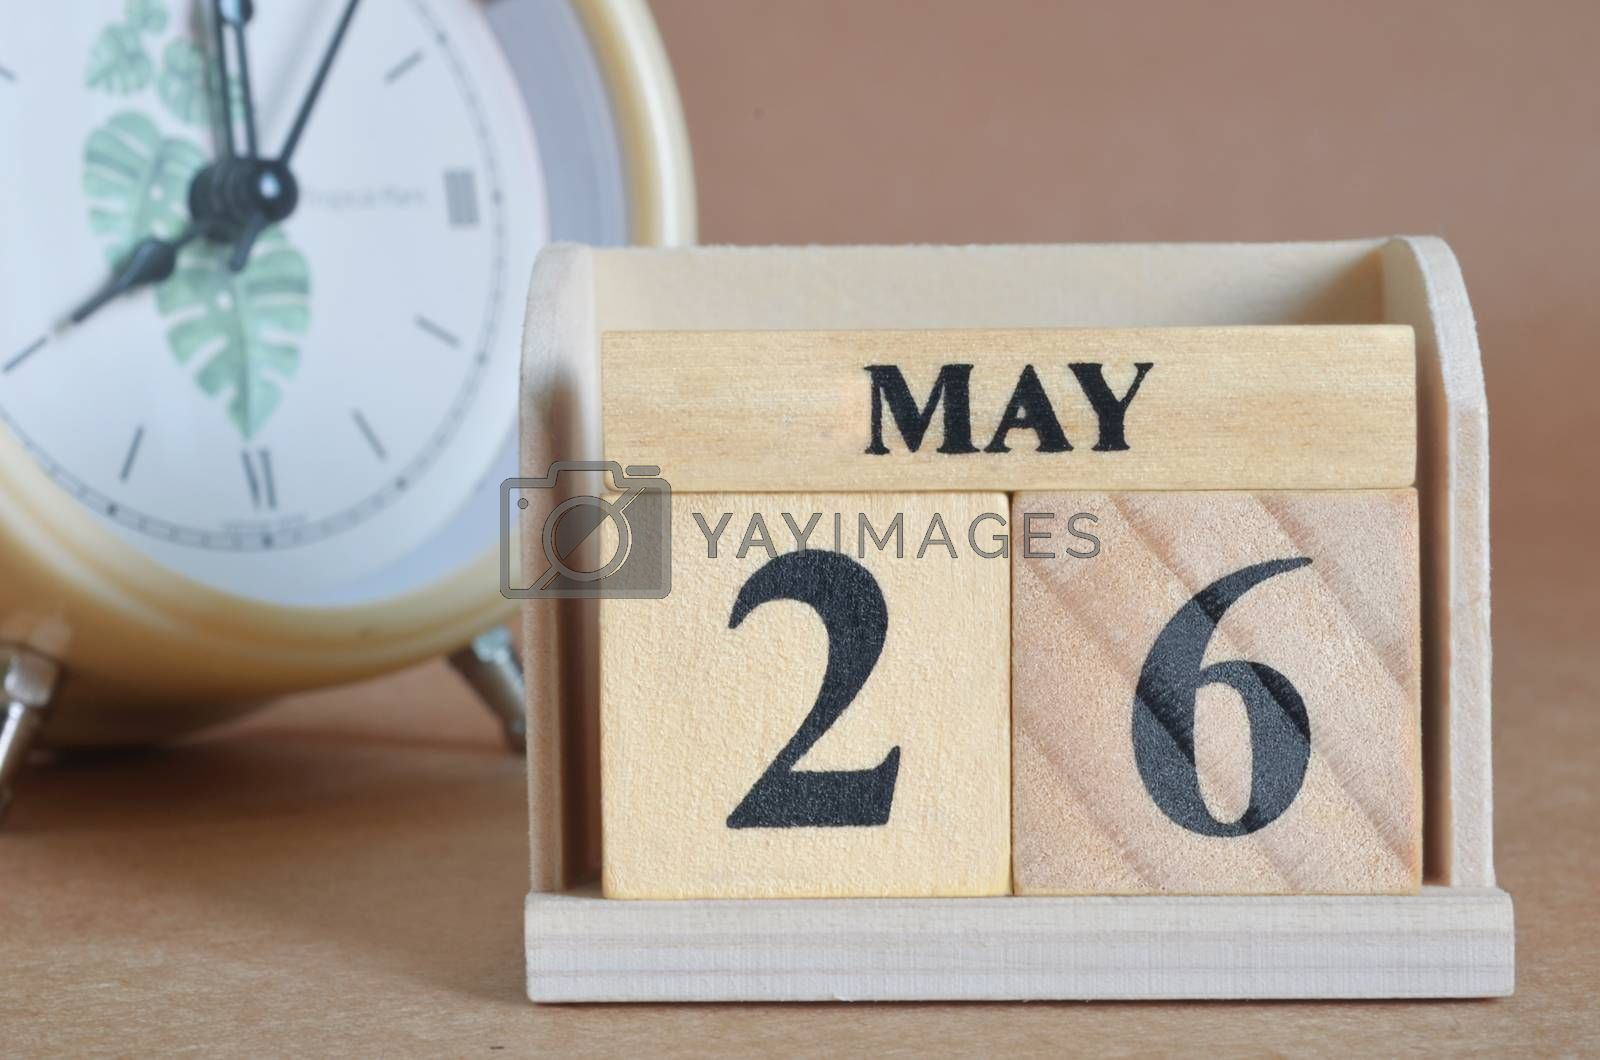 May 26 by Mrfrost